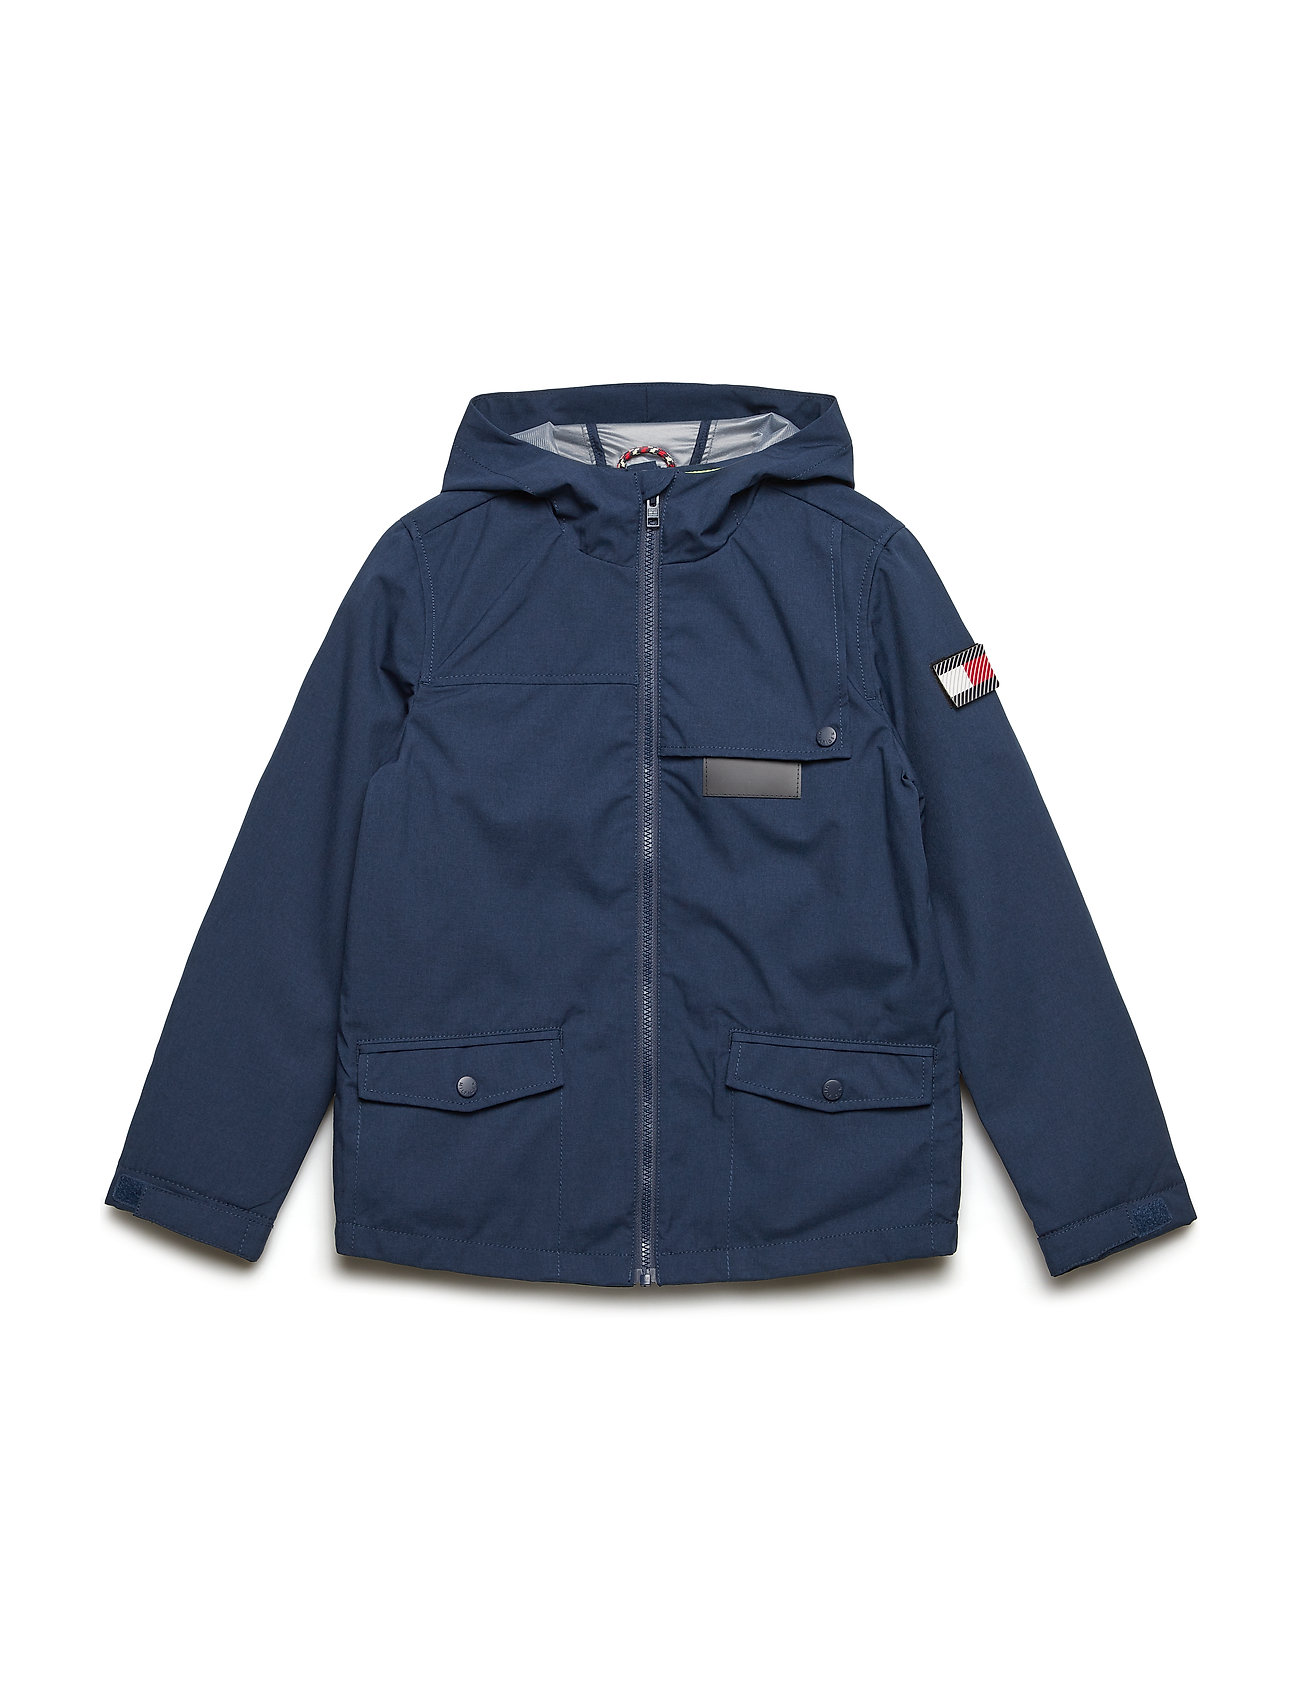 Tommy Hilfiger TECH JACKET - BLACK IRIS